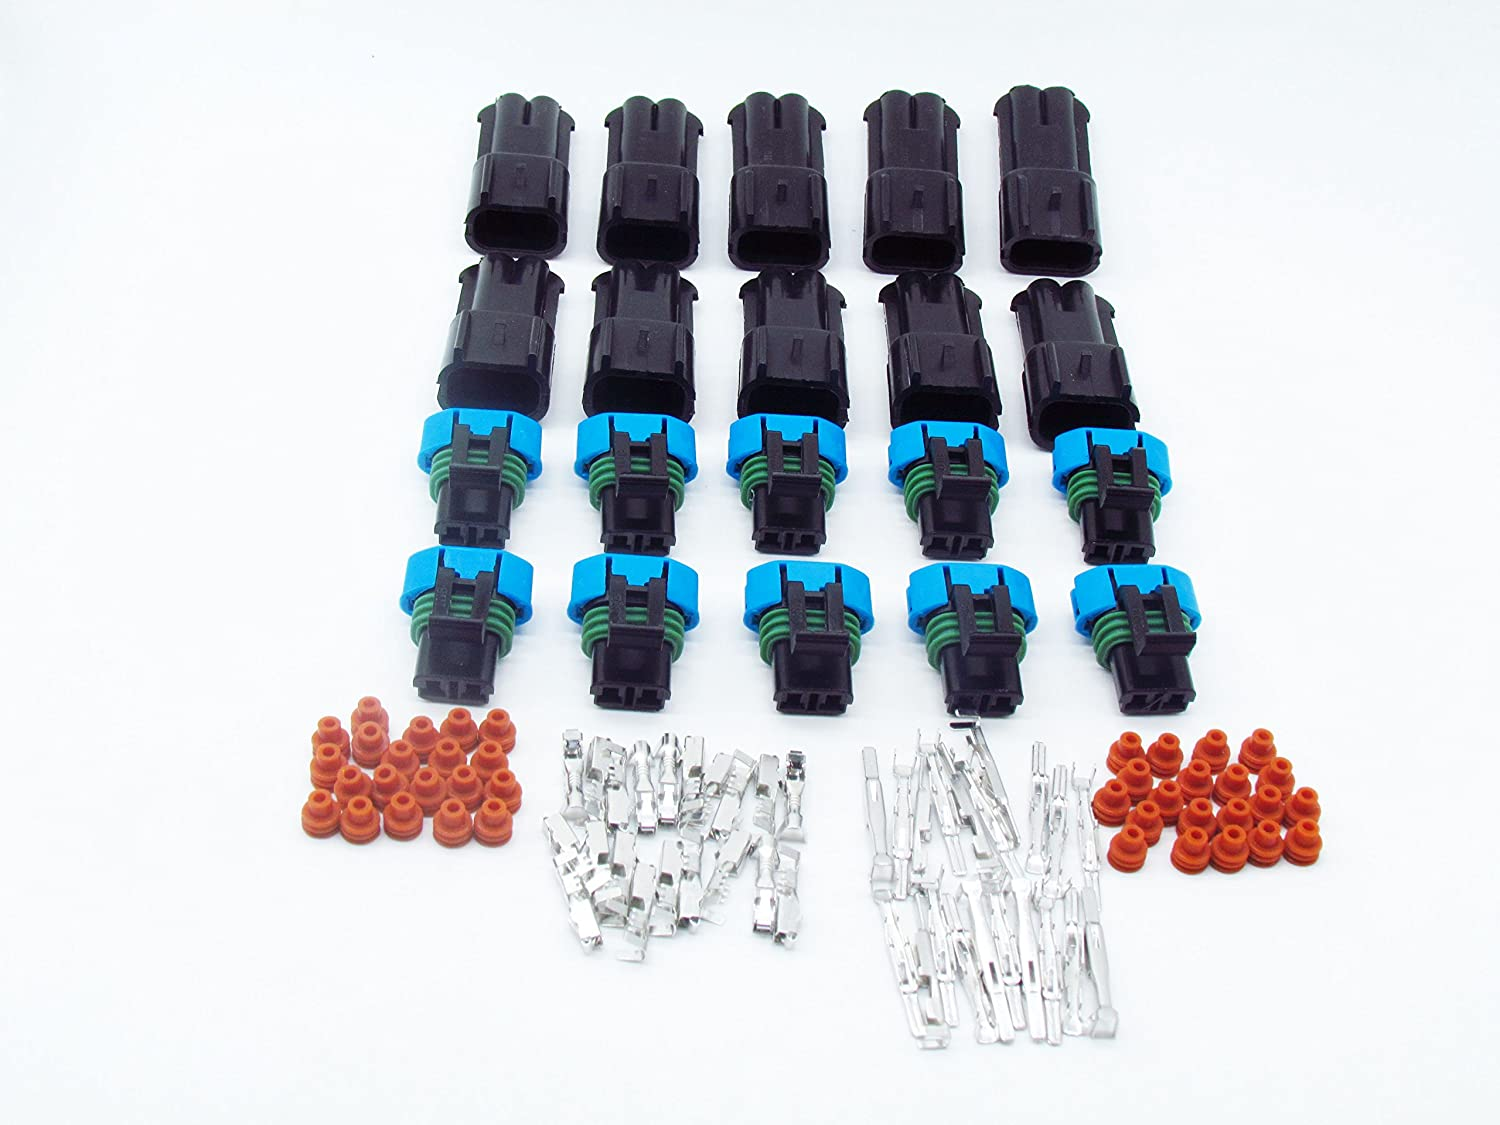 CNKF 10 Sets 2 Way Male and female 280 Metri-pack Connector Includes Terminals and Seals for FORD LINCOLN MERCURY 3U2Z-14S411-GEA /15300027 kaifa elec